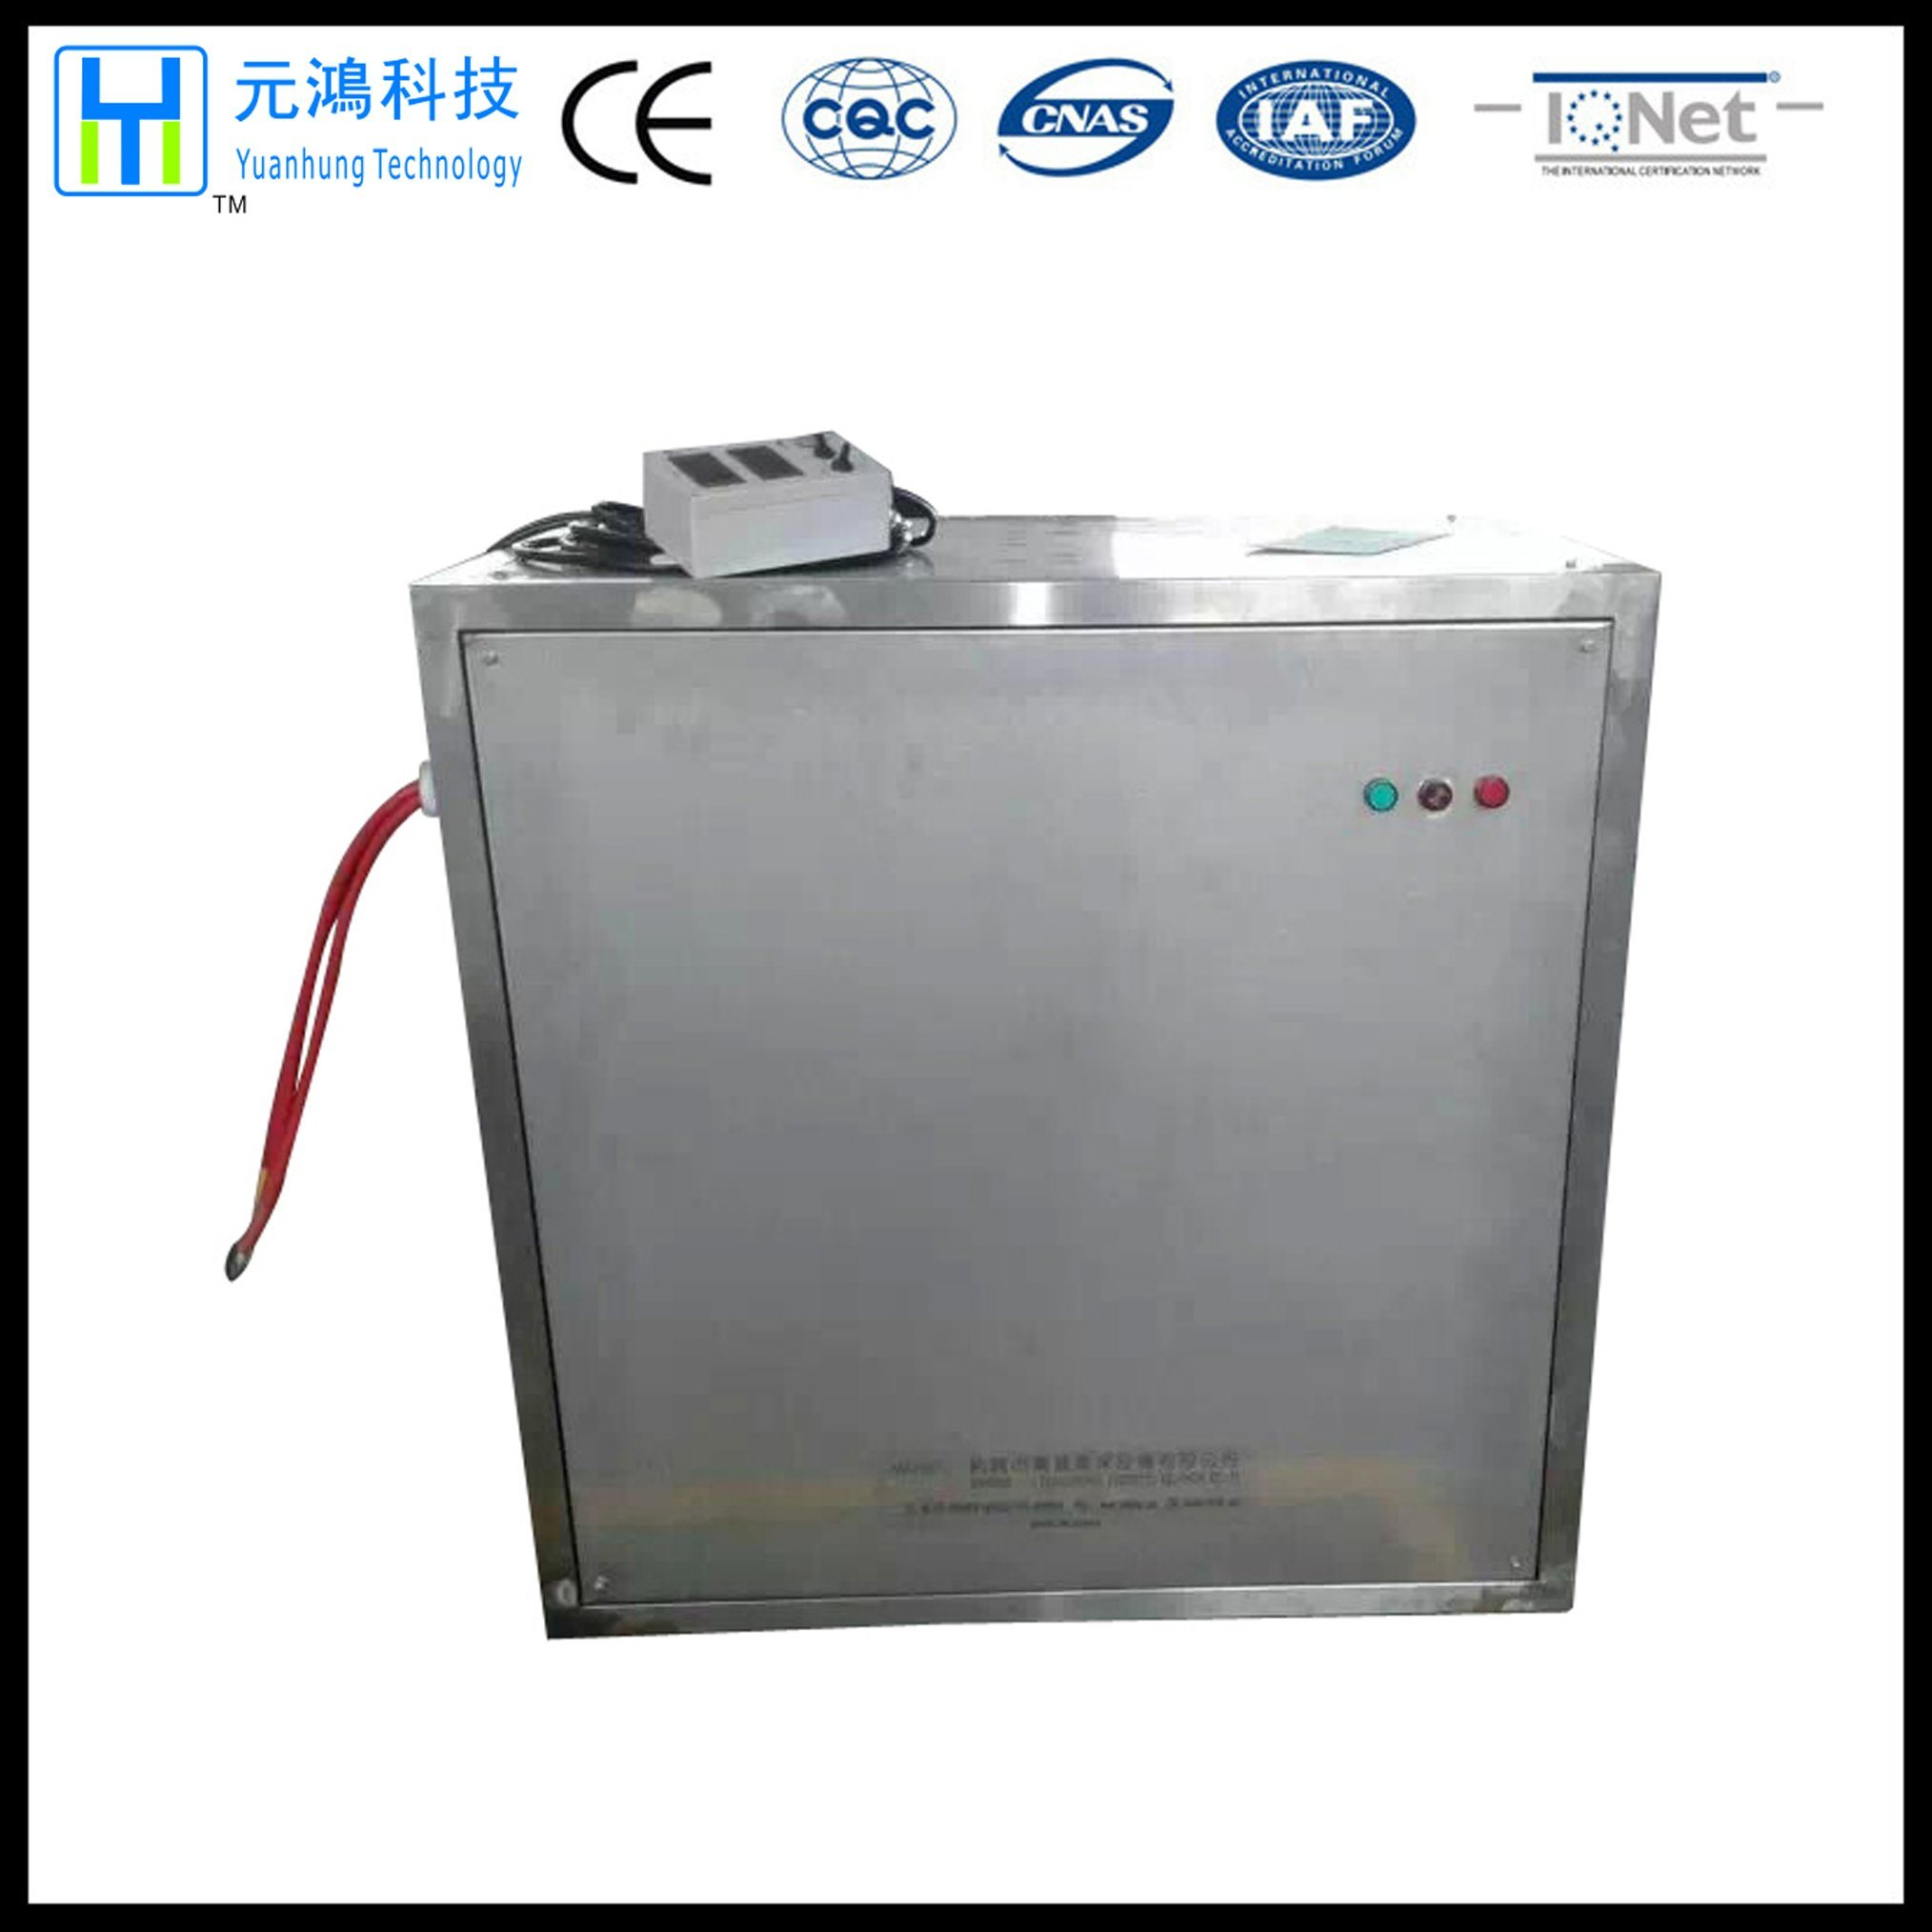 304 Stainless Steel 24V DC Rectifier for Anodizing